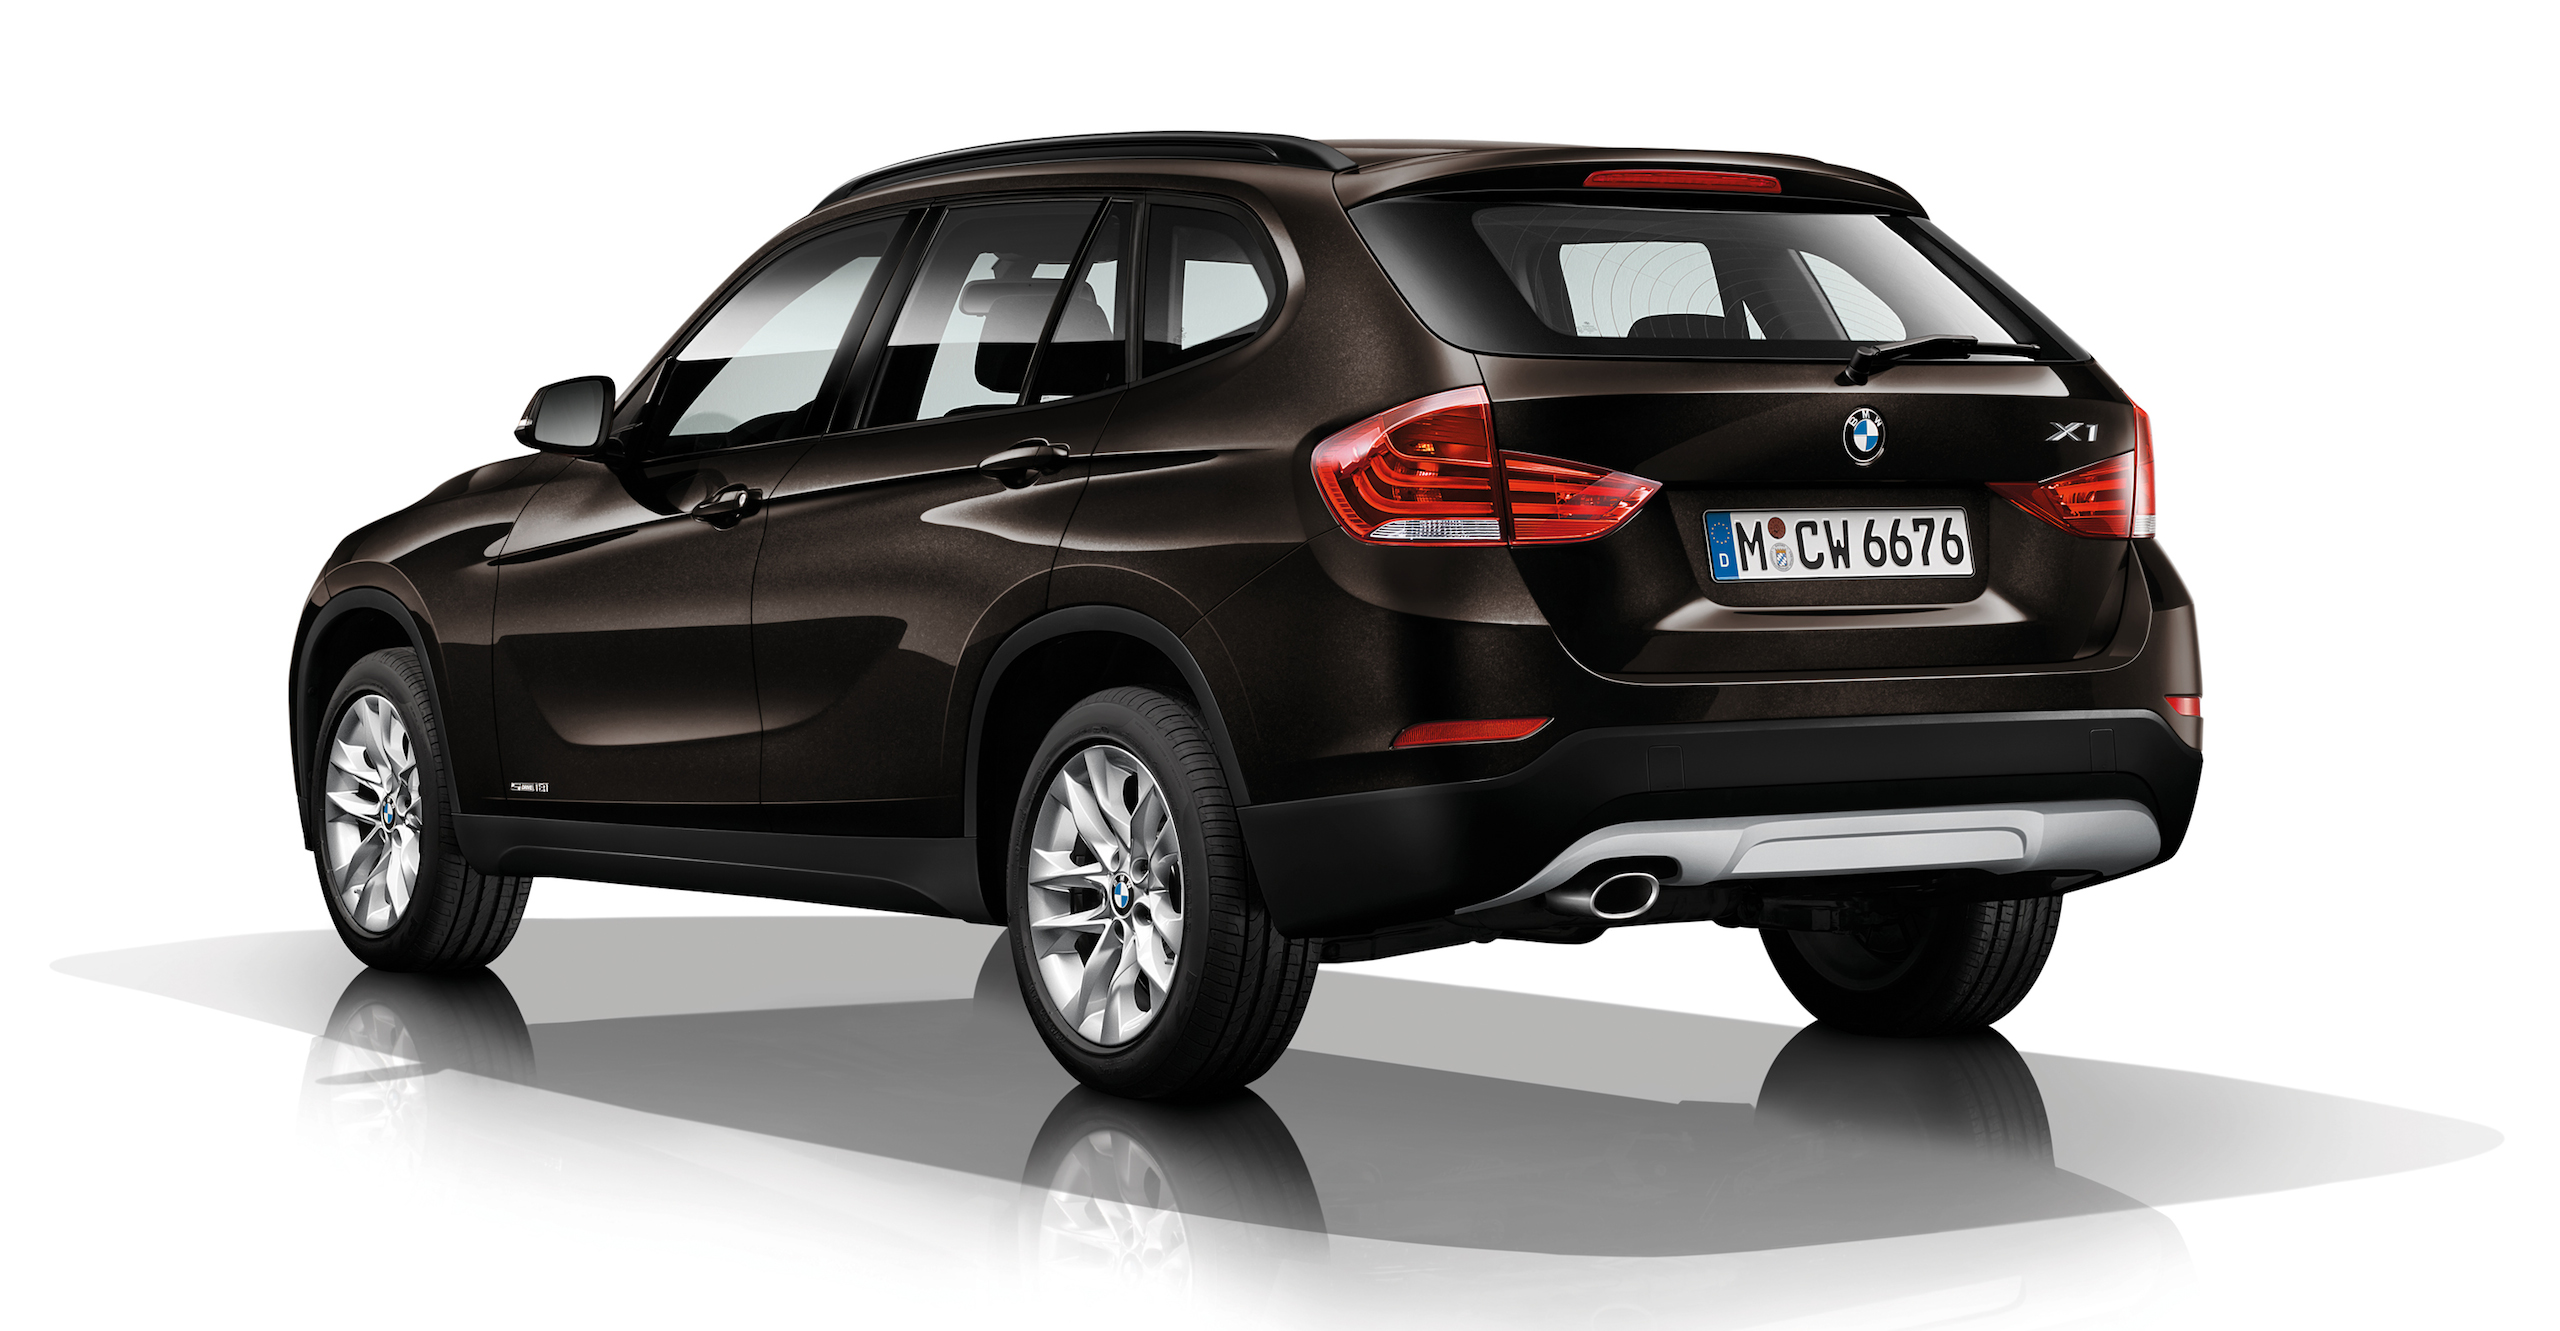 bmw x1 compact suv gets a minor refresh for 2014 image 217489. Black Bedroom Furniture Sets. Home Design Ideas